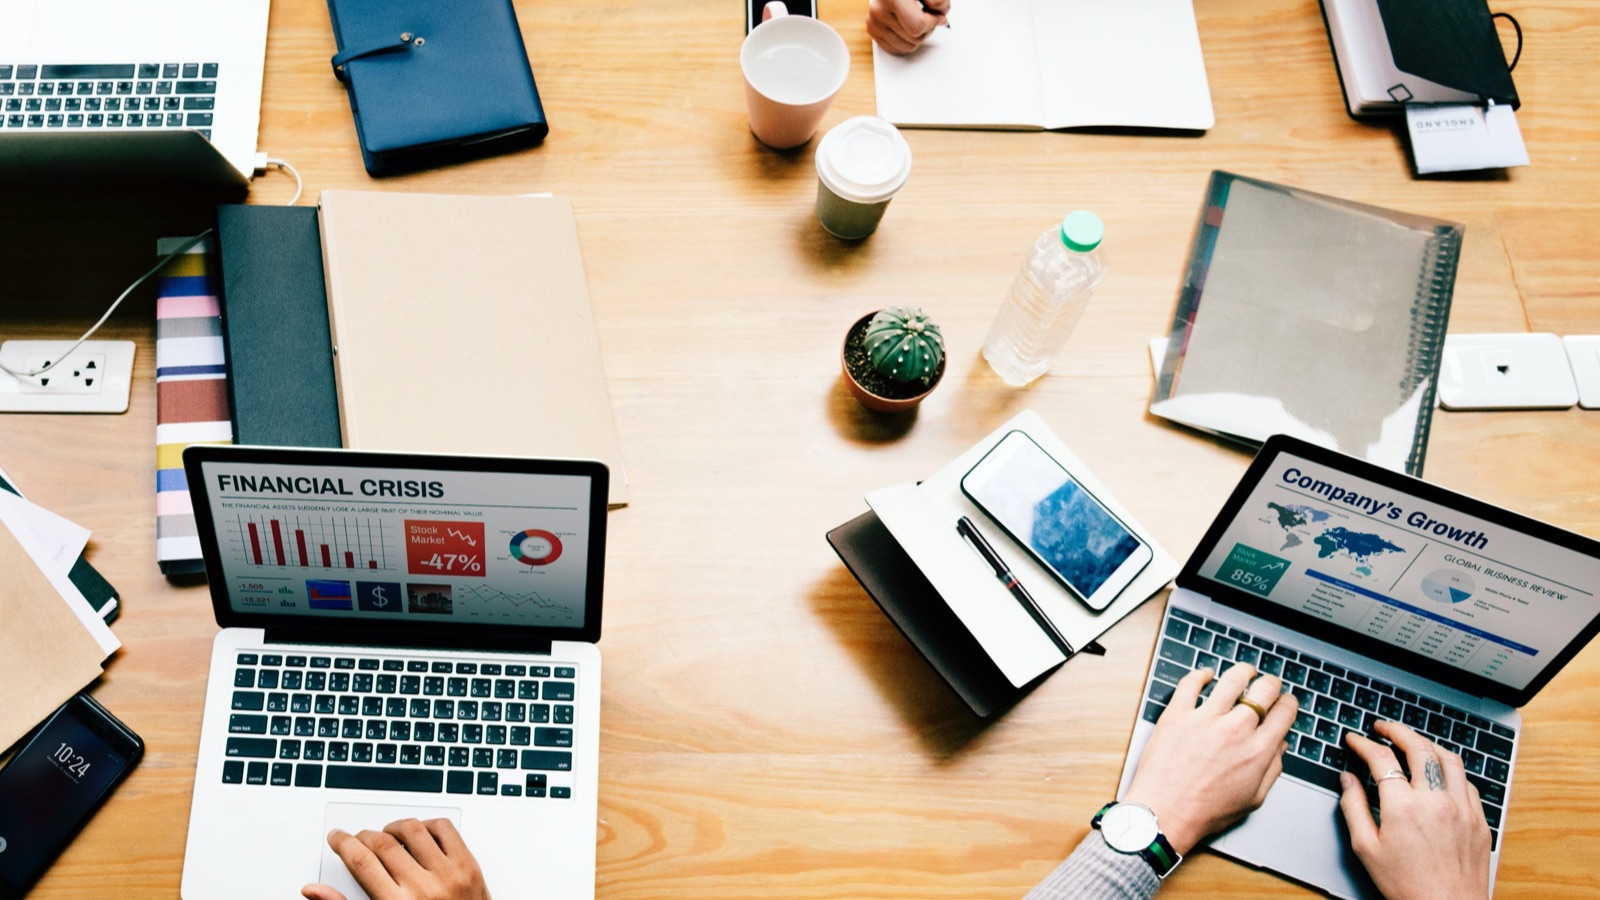 Tips For Growing Your Company When Your Small Business Is No Longer Small